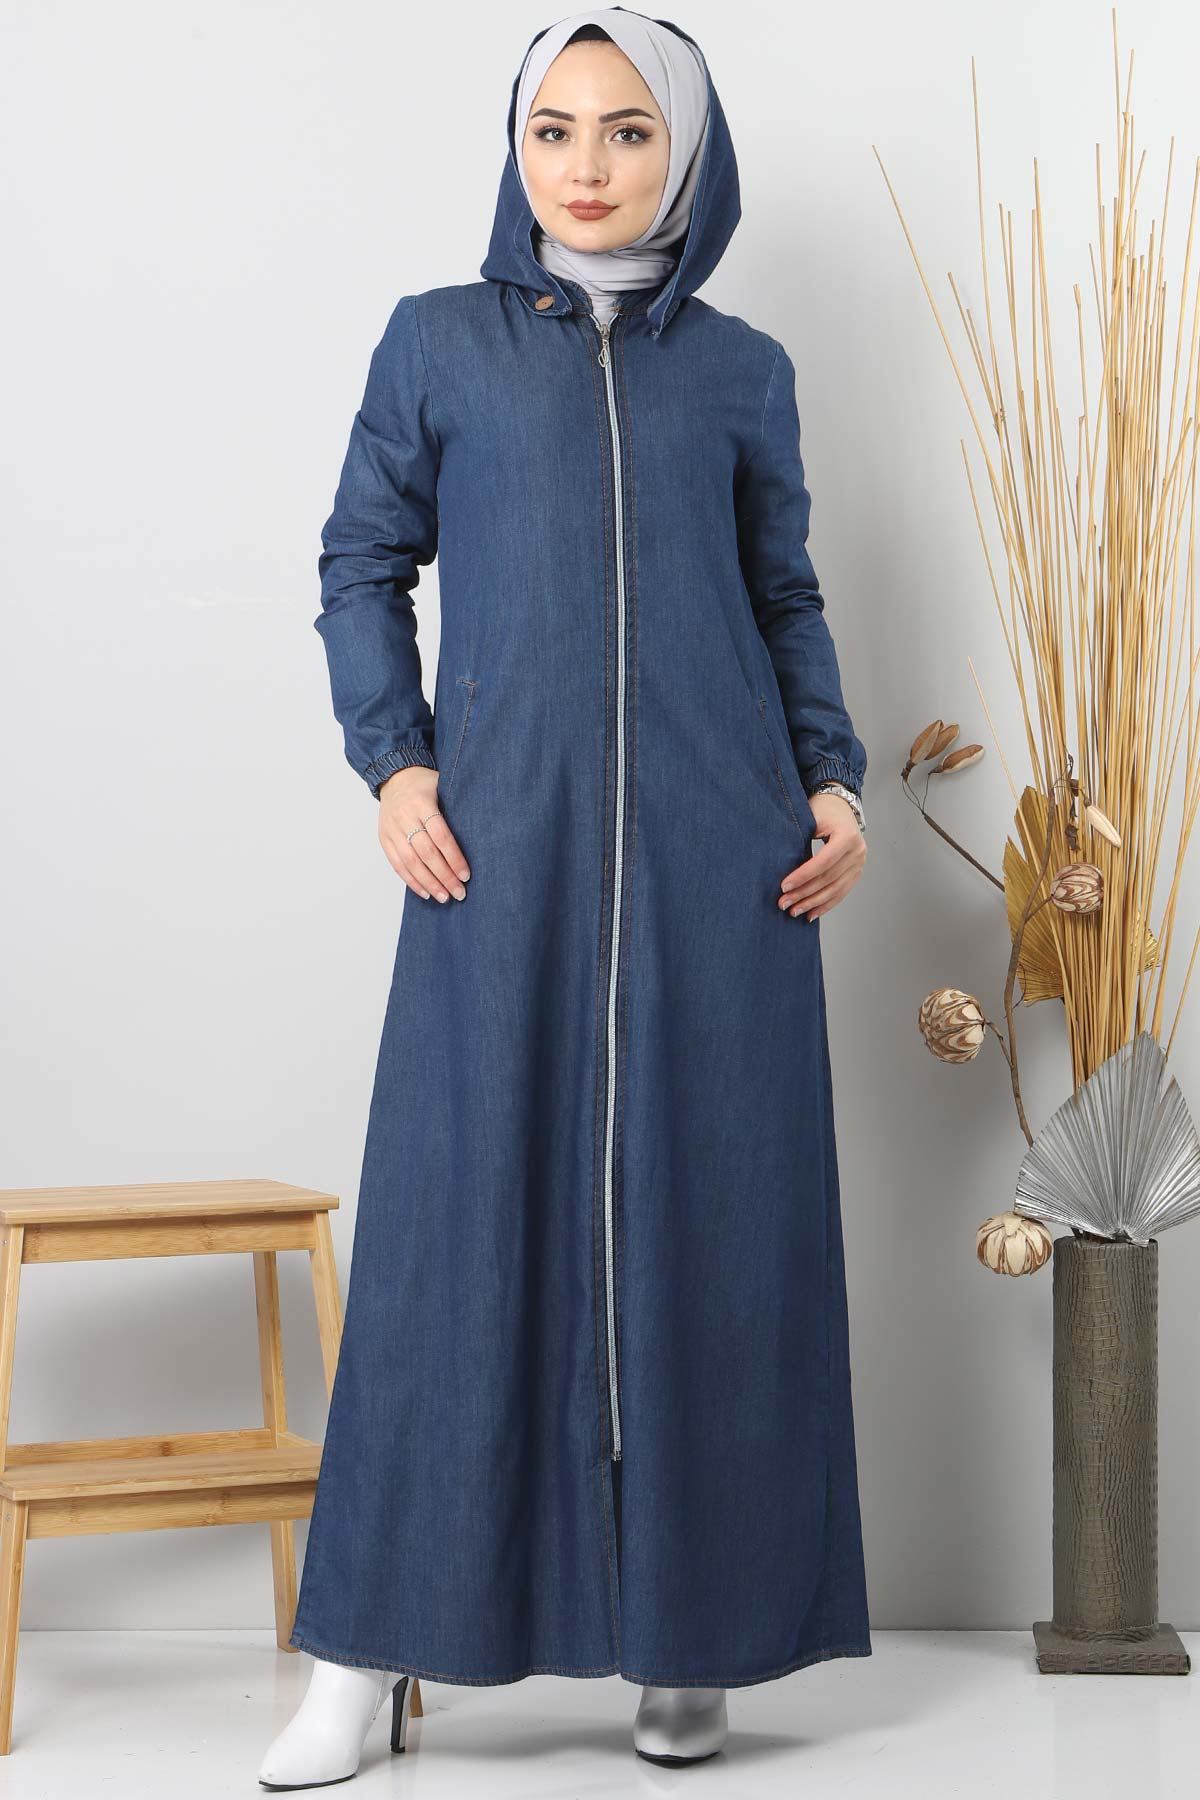 Jeans Hijab Abaya With Buttons Detail TSD 8220 Navy Blue